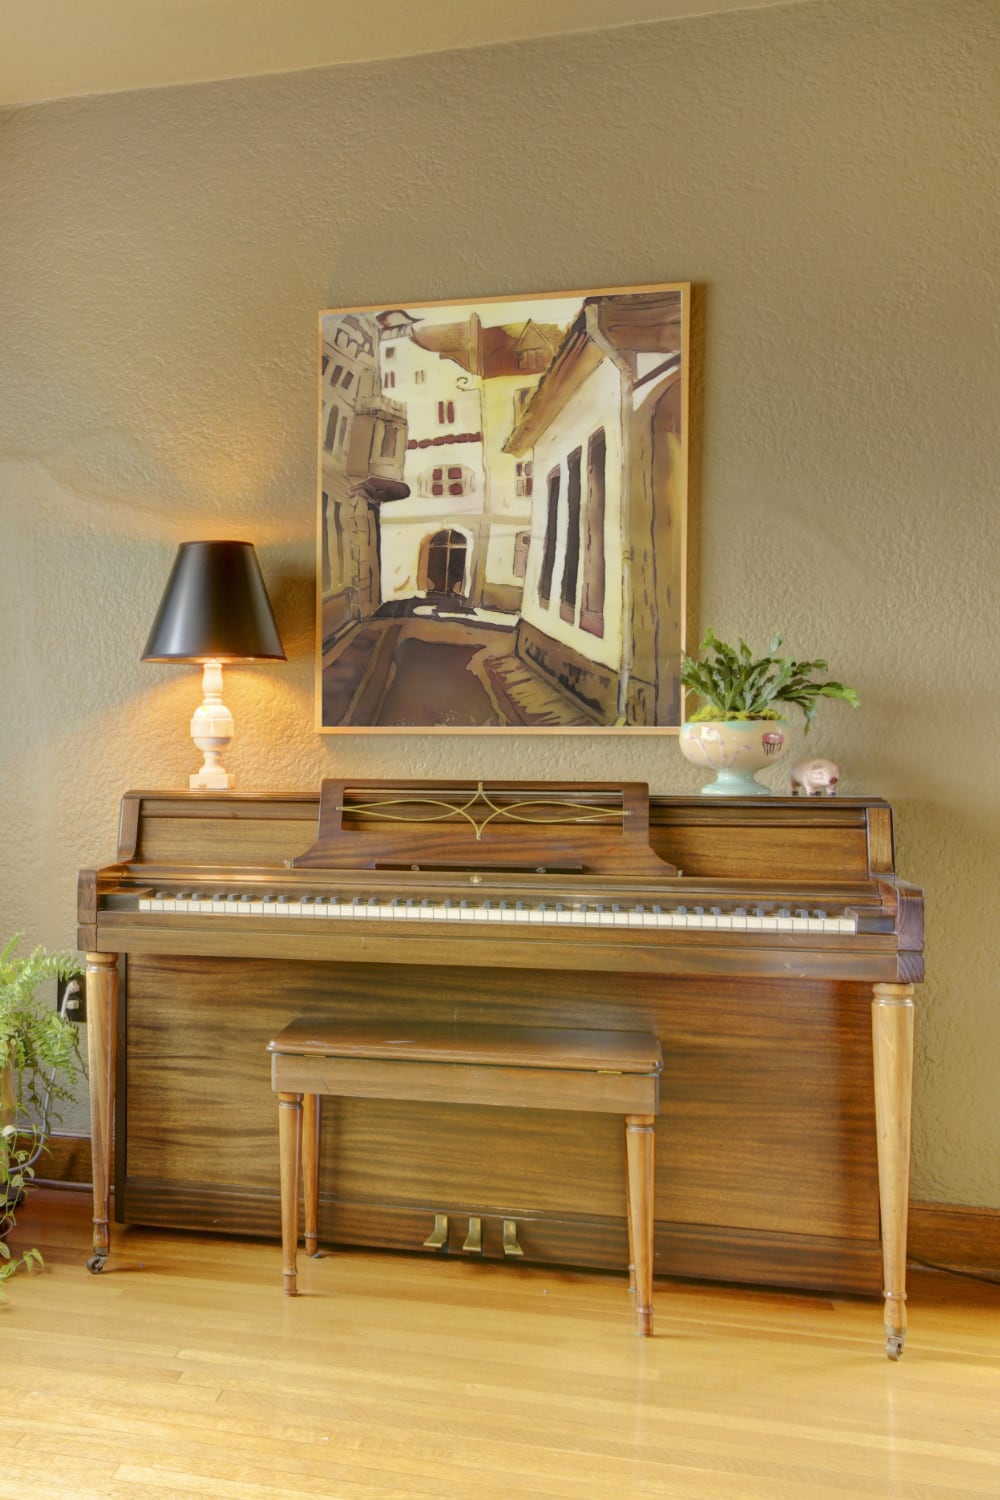 Piano room ideas_20